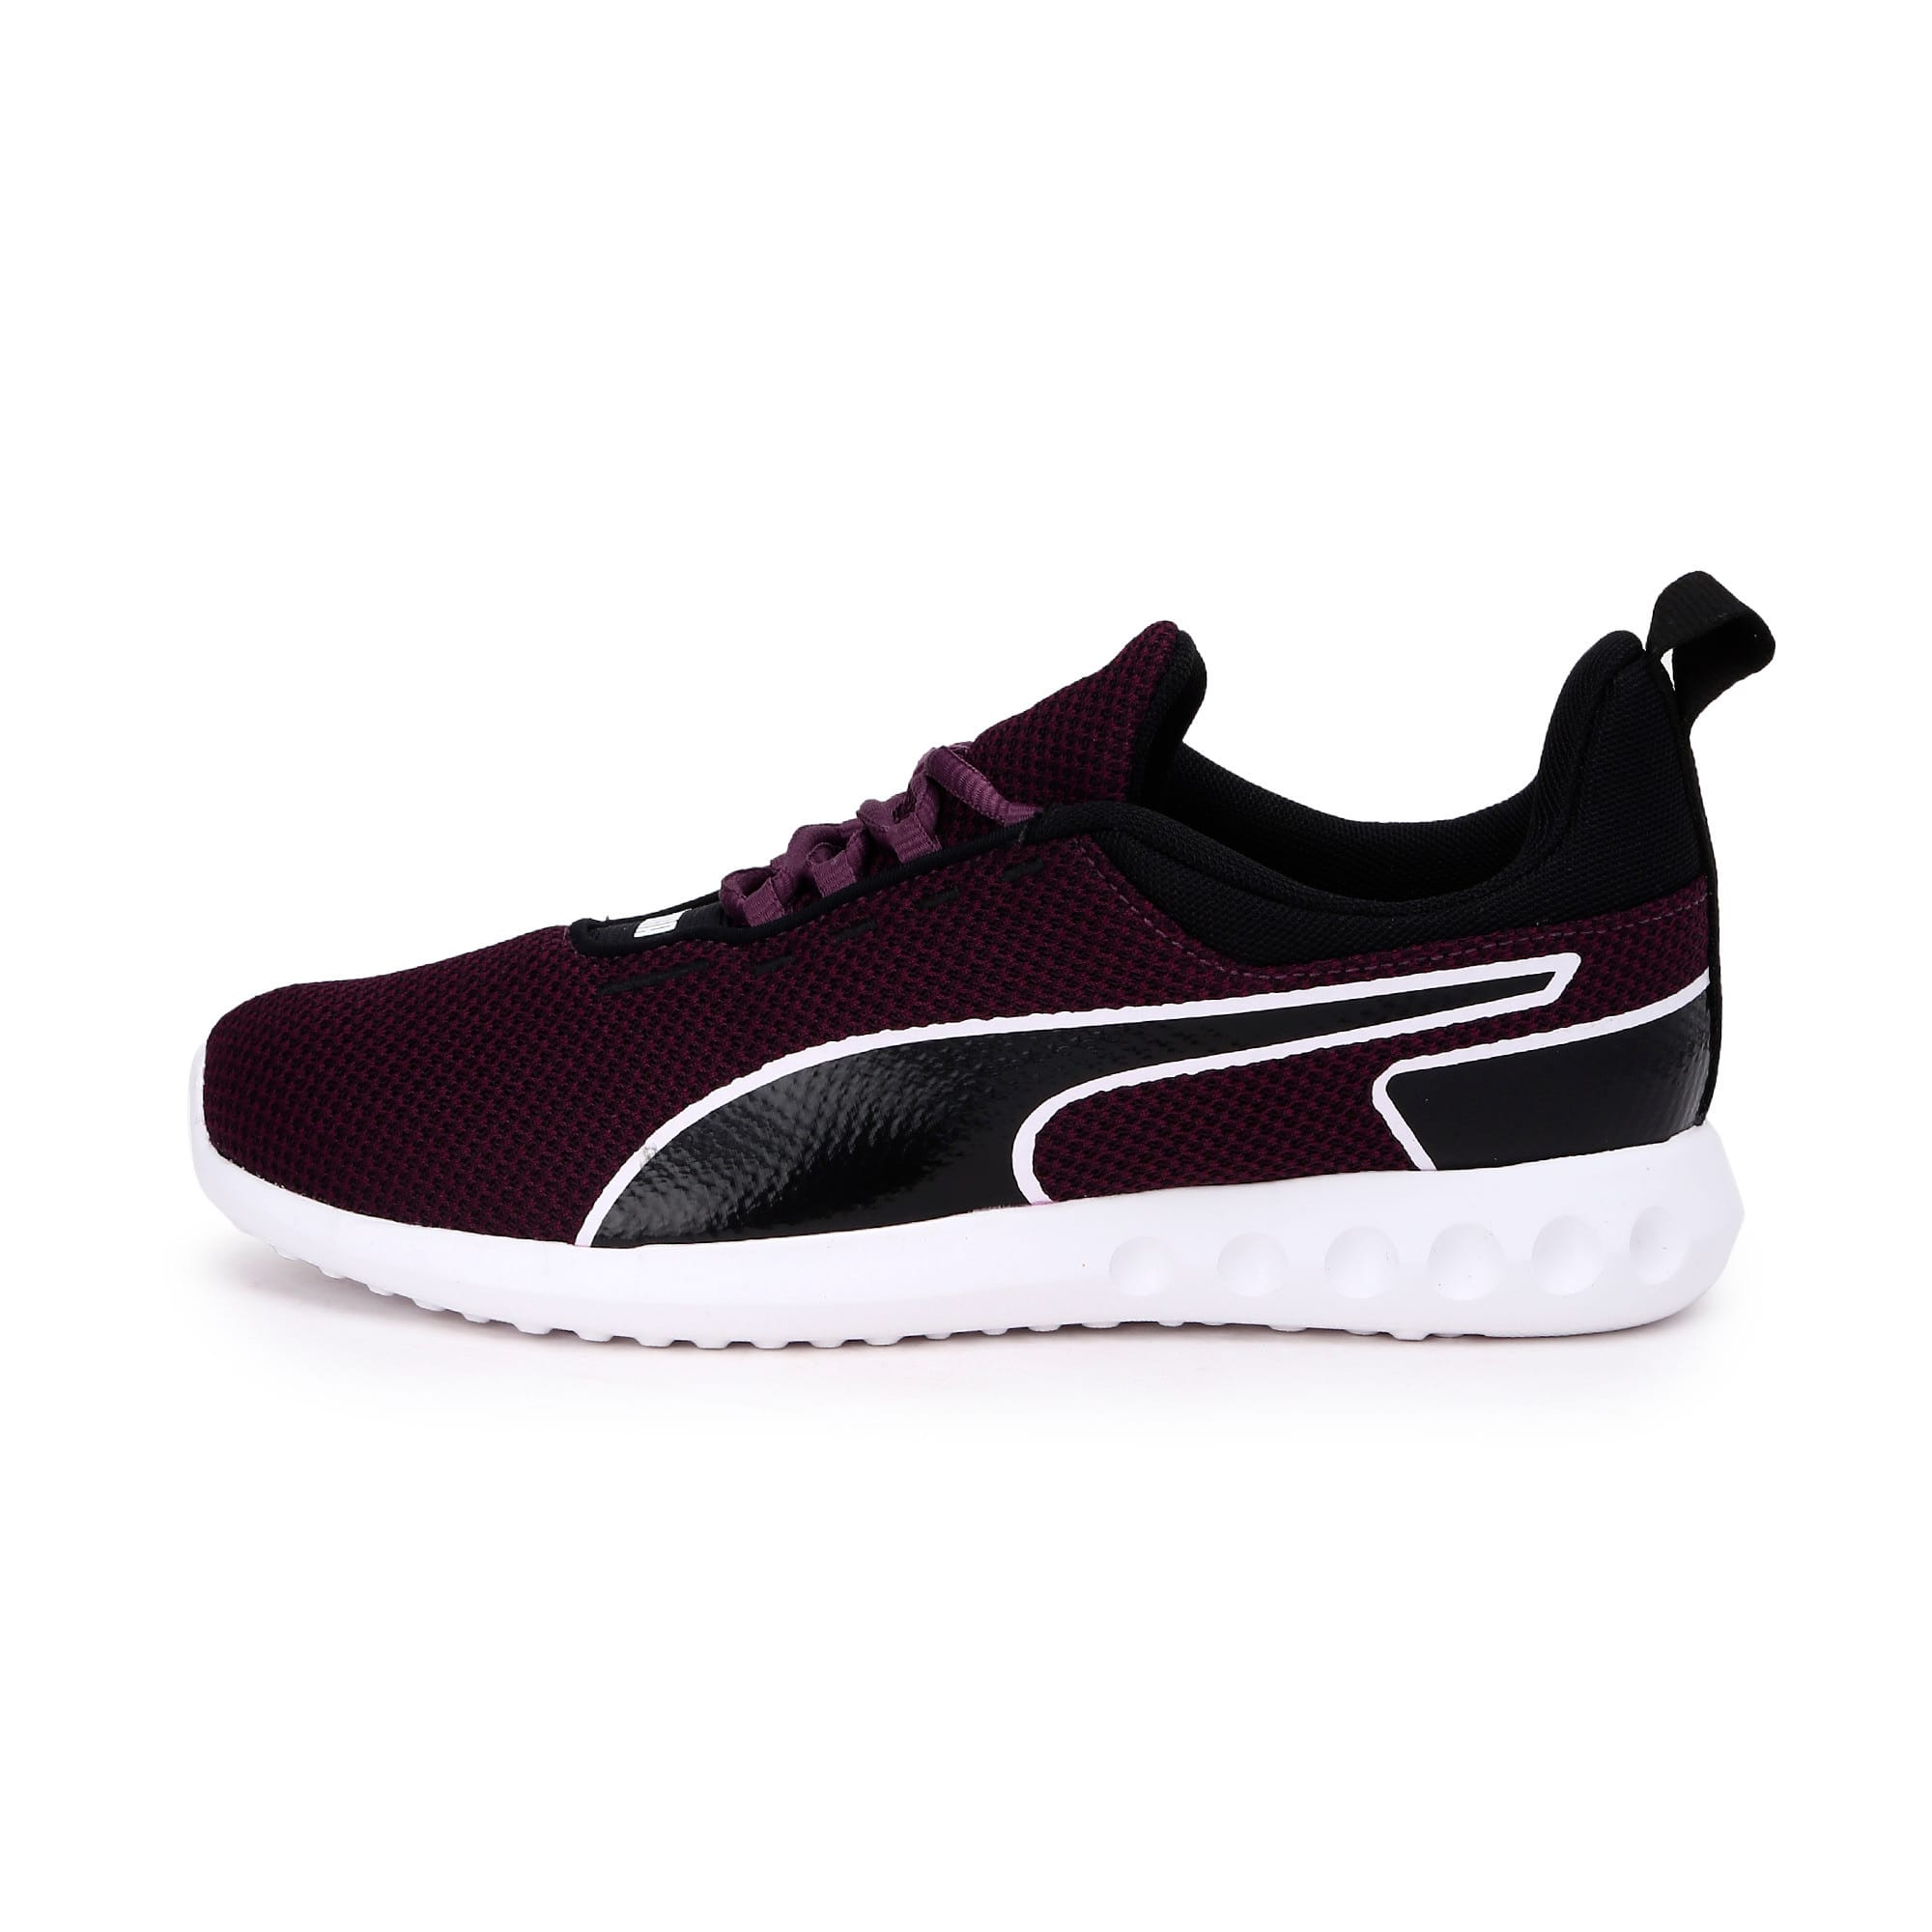 Thumbnail 1 of Concave Pro Wn s IDP Silver Gray-Puma Wh, Plum Purple-Puma Black-White, medium-IND